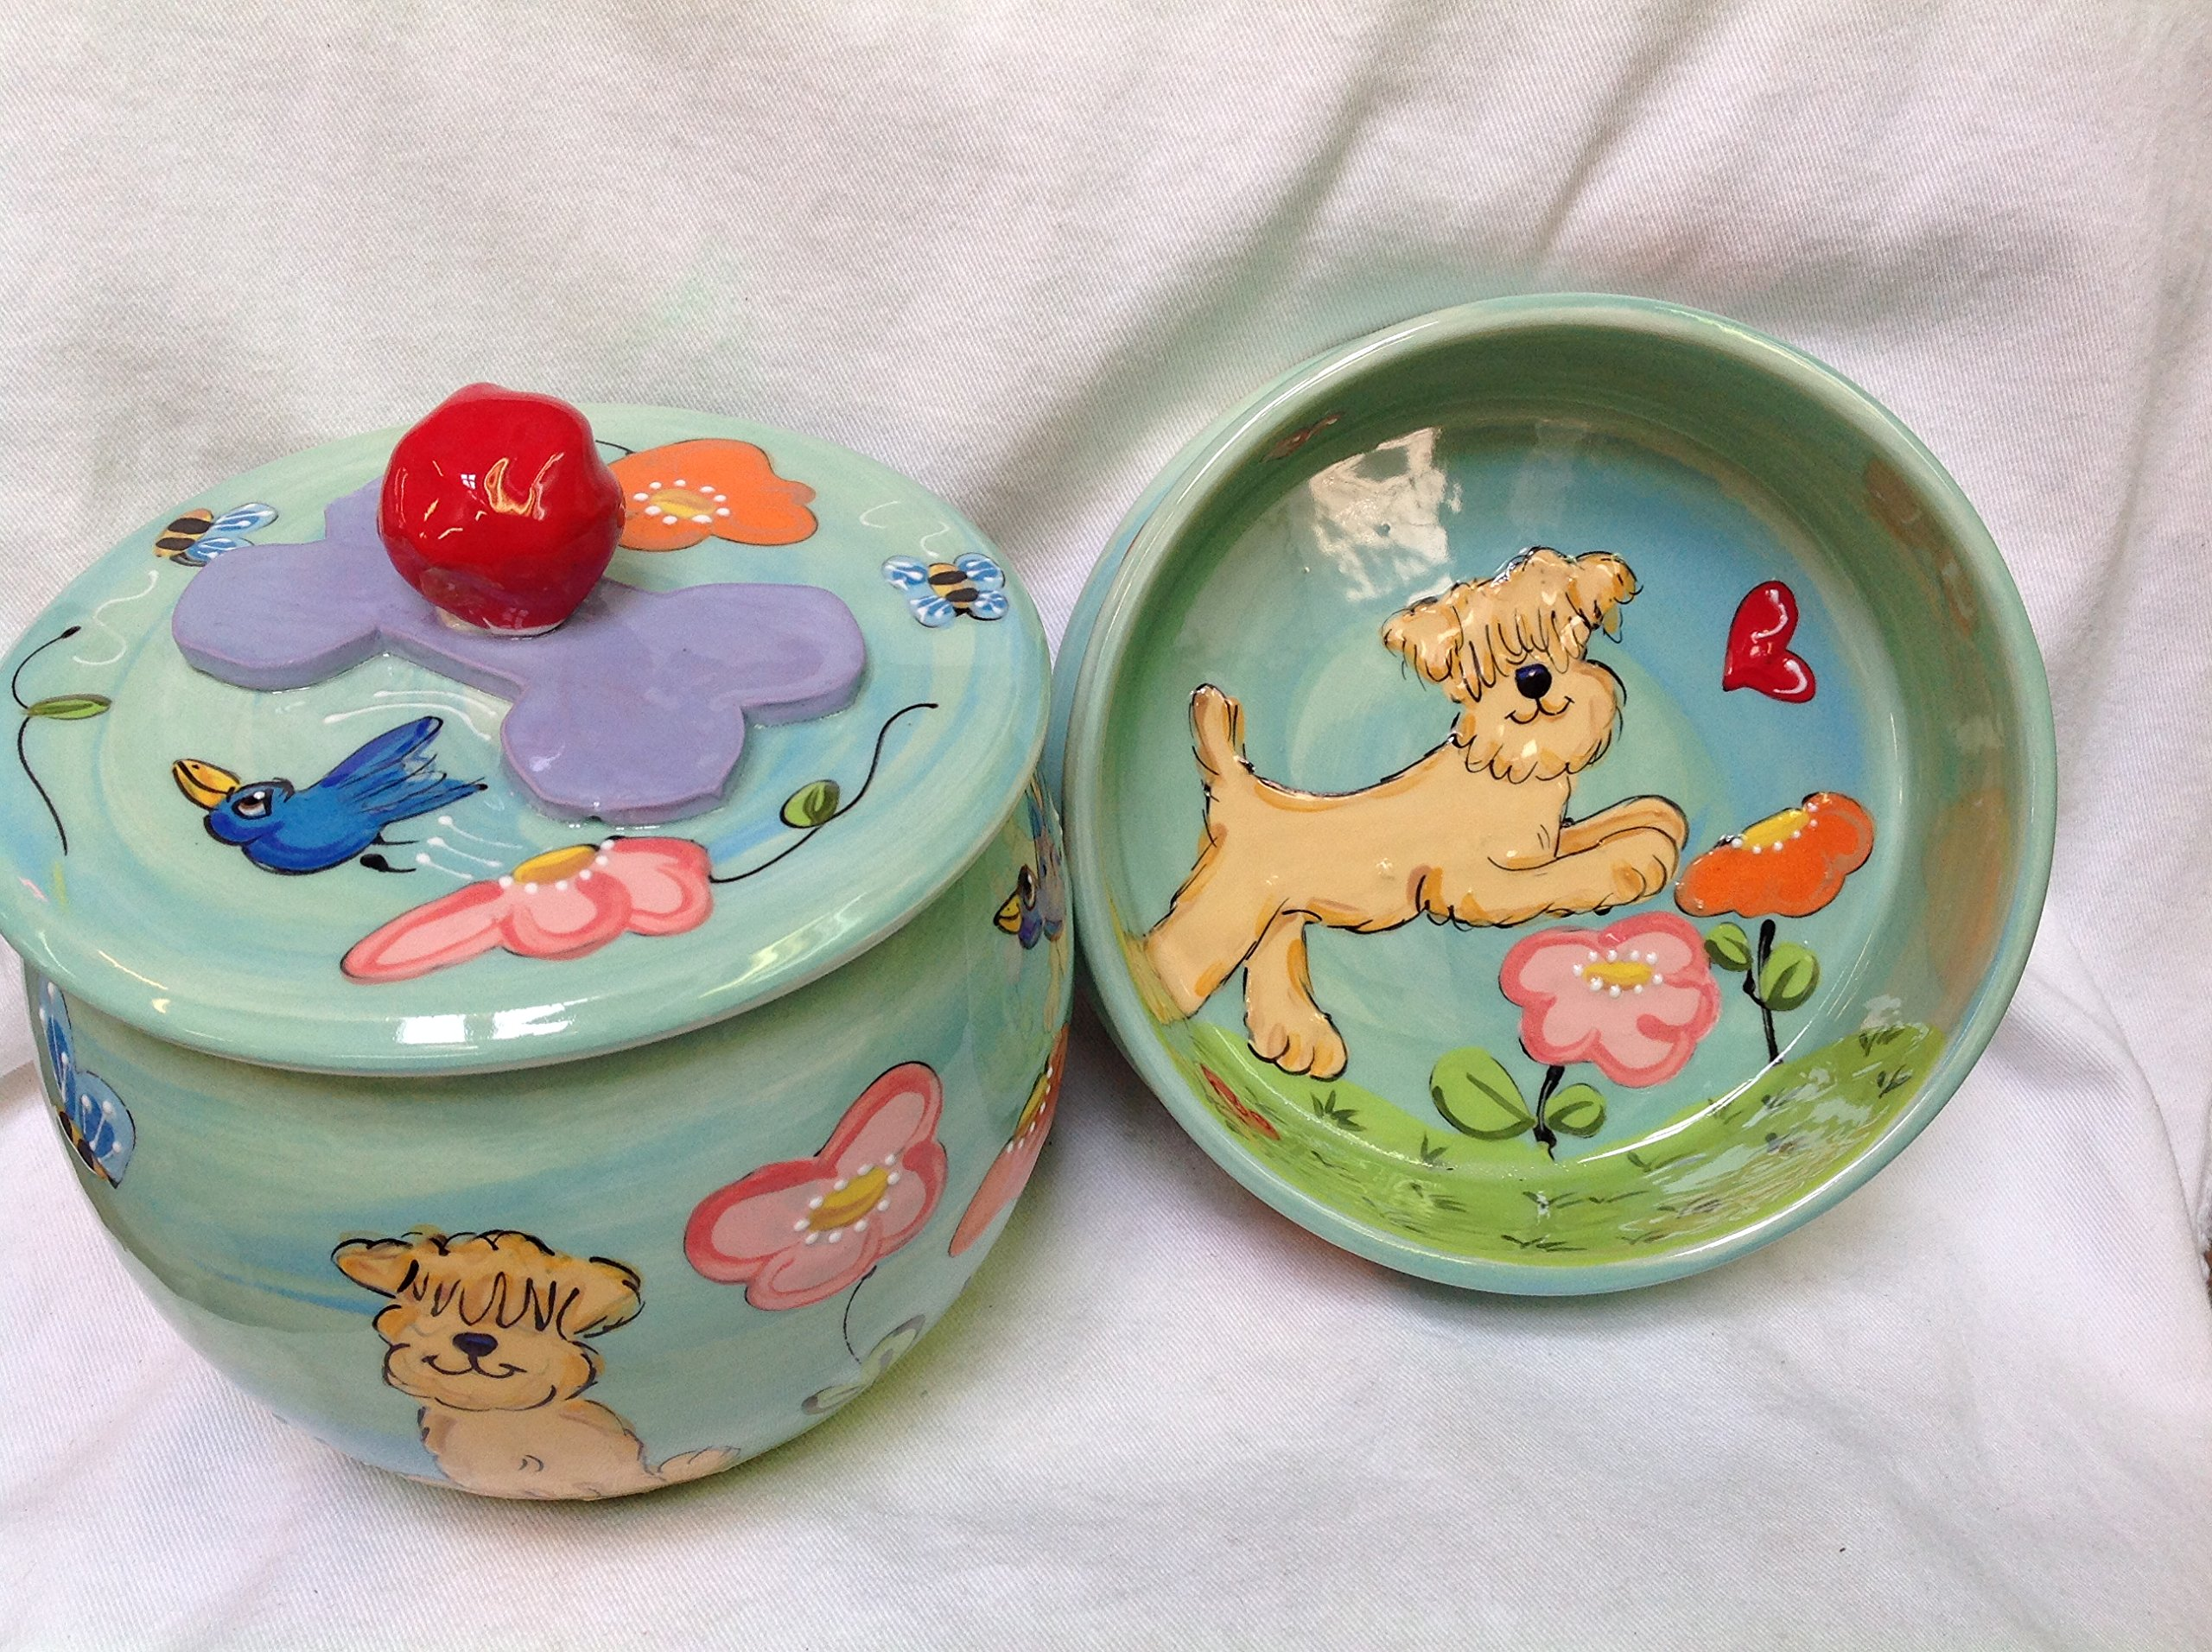 10'' Golden Doodle Pet Bowl for Food or Water and Treat Jar. Personalized at no Charge. Signed by Artist, Debby Carman.